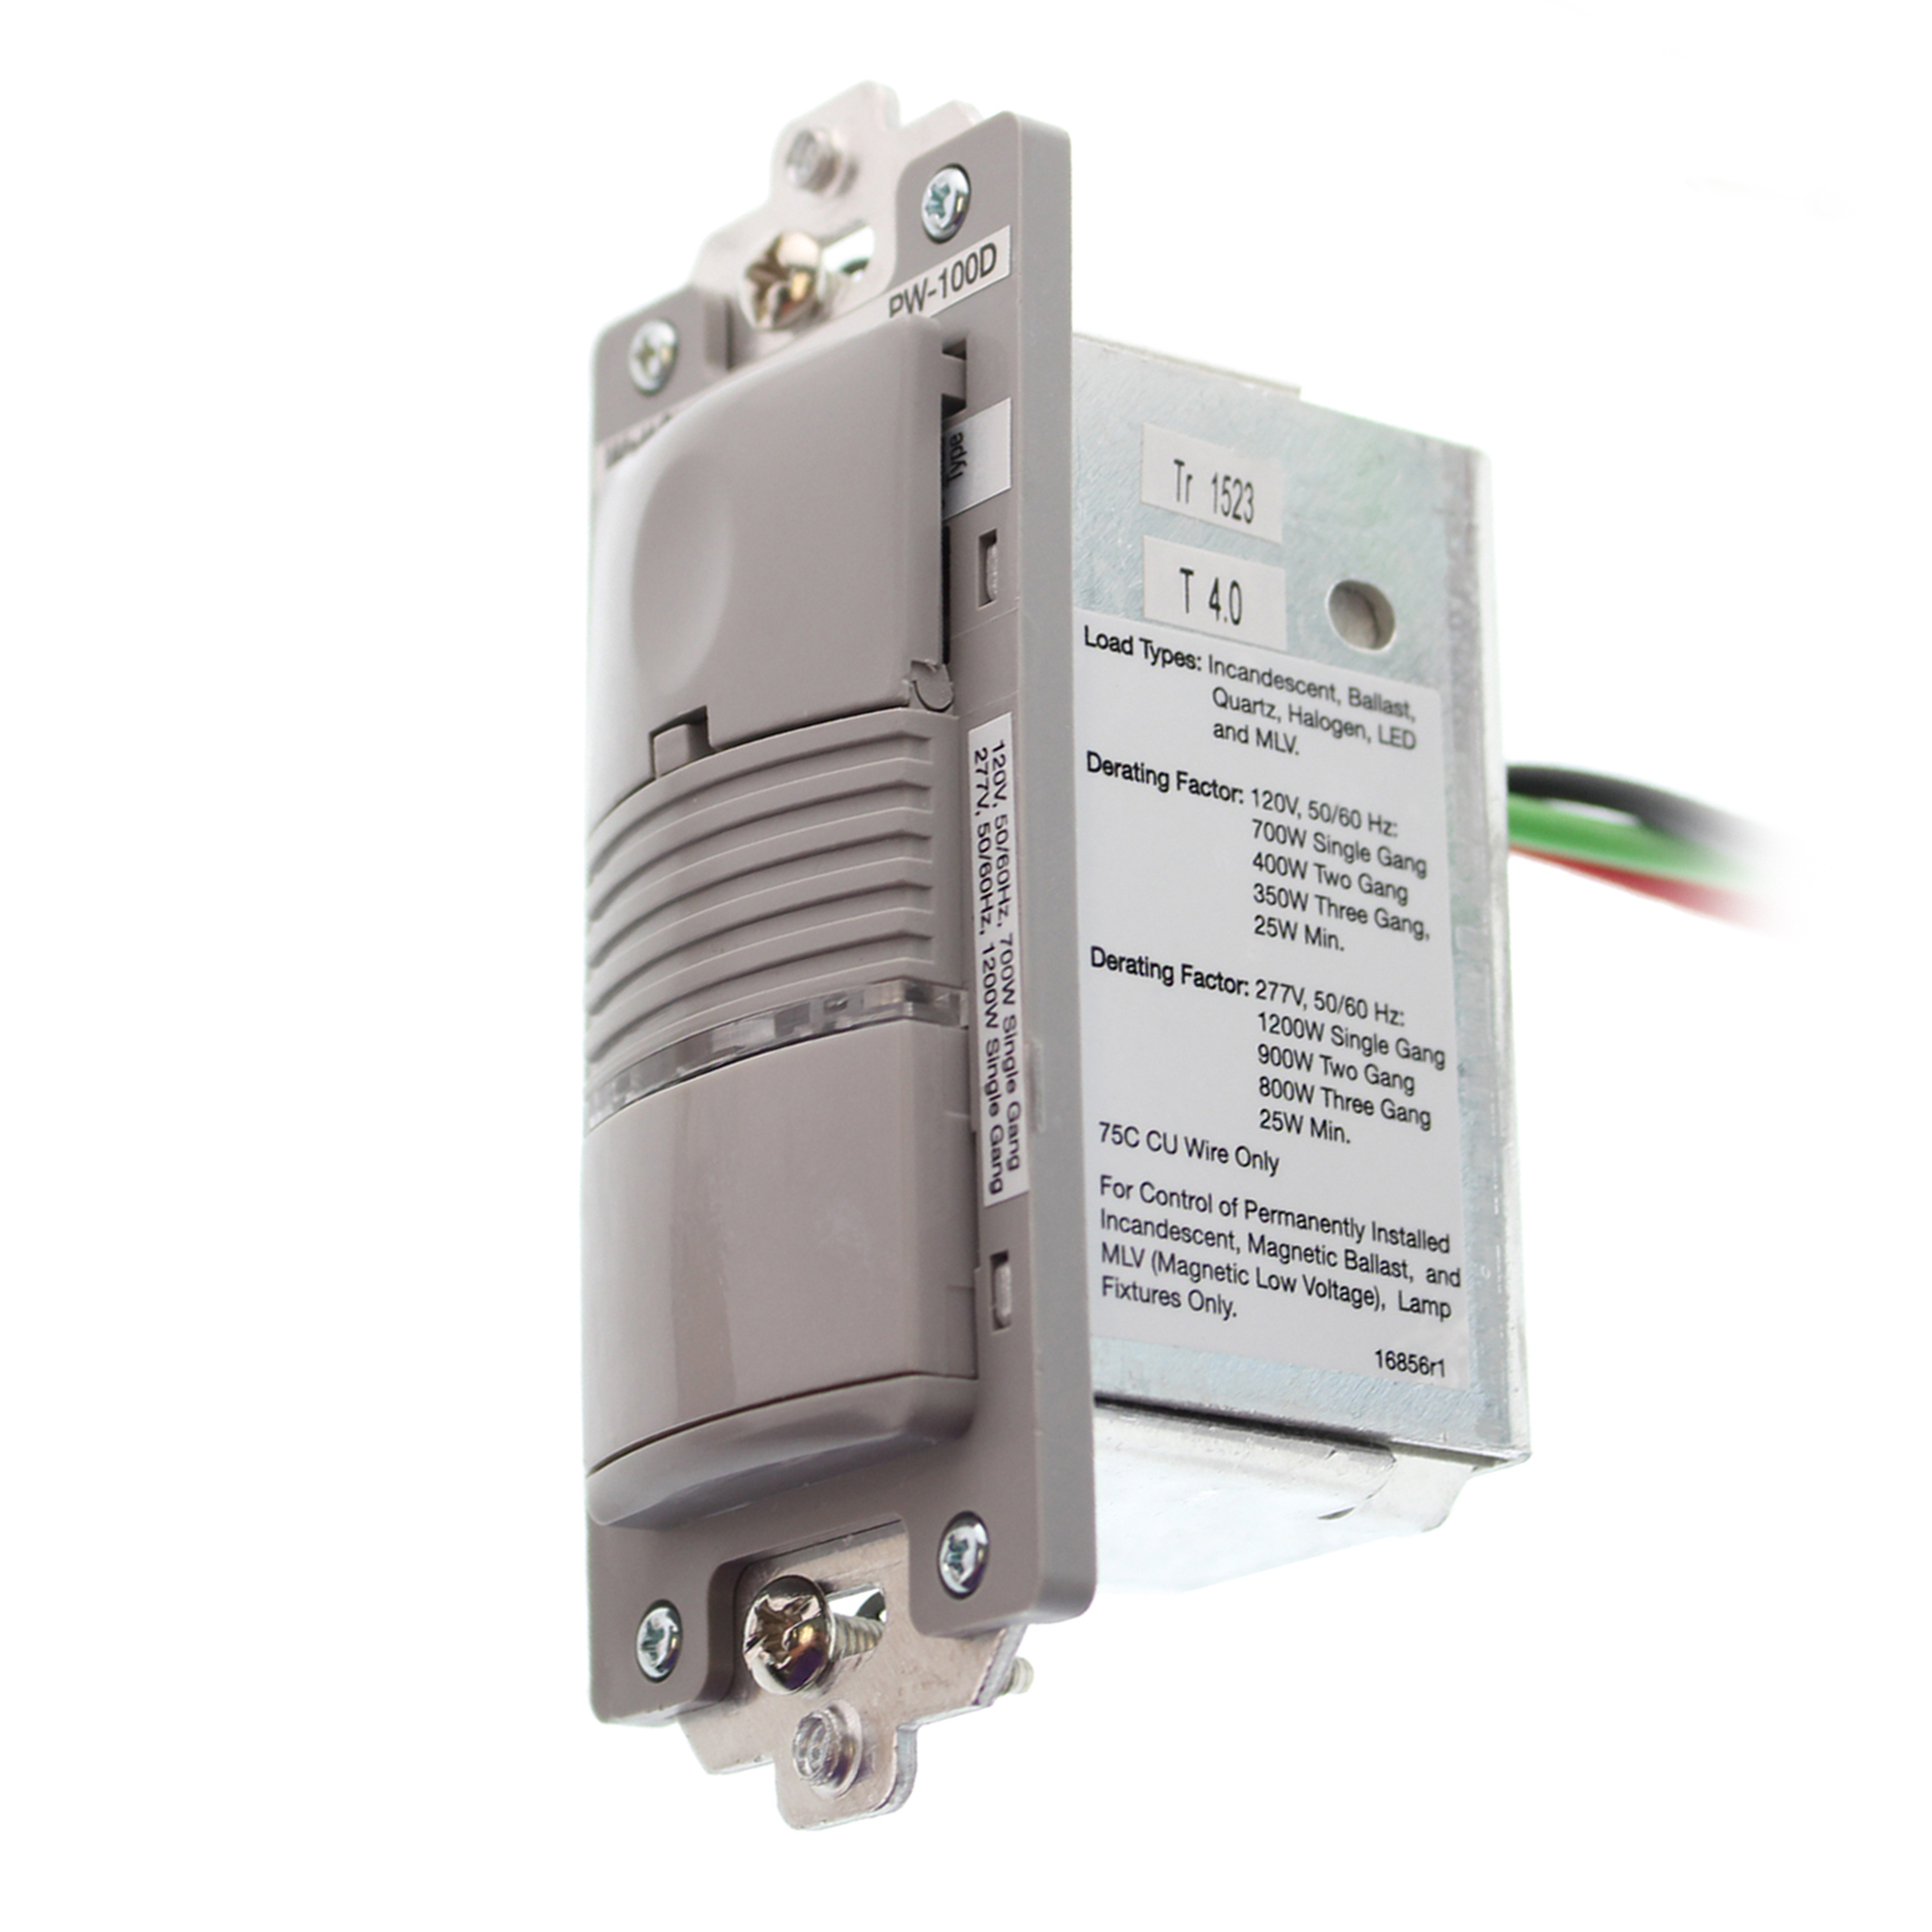 Watt Stopper PW-100D-G PIR Wall Switch Occupancy Sensor, 120/277V, Gray